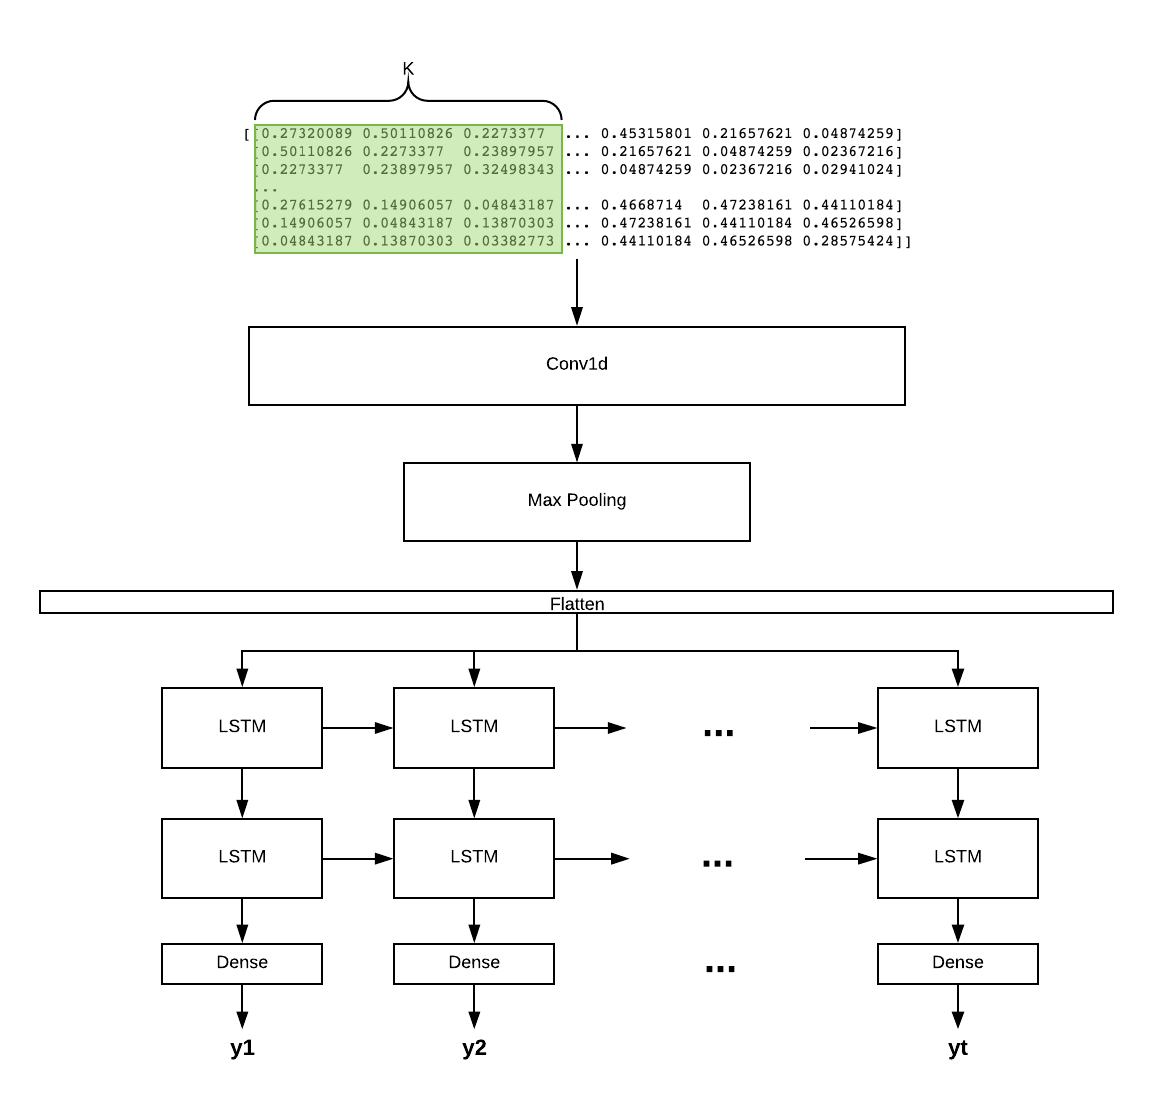 Get Started with Using CNN+LSTM for Forecasting - Towards